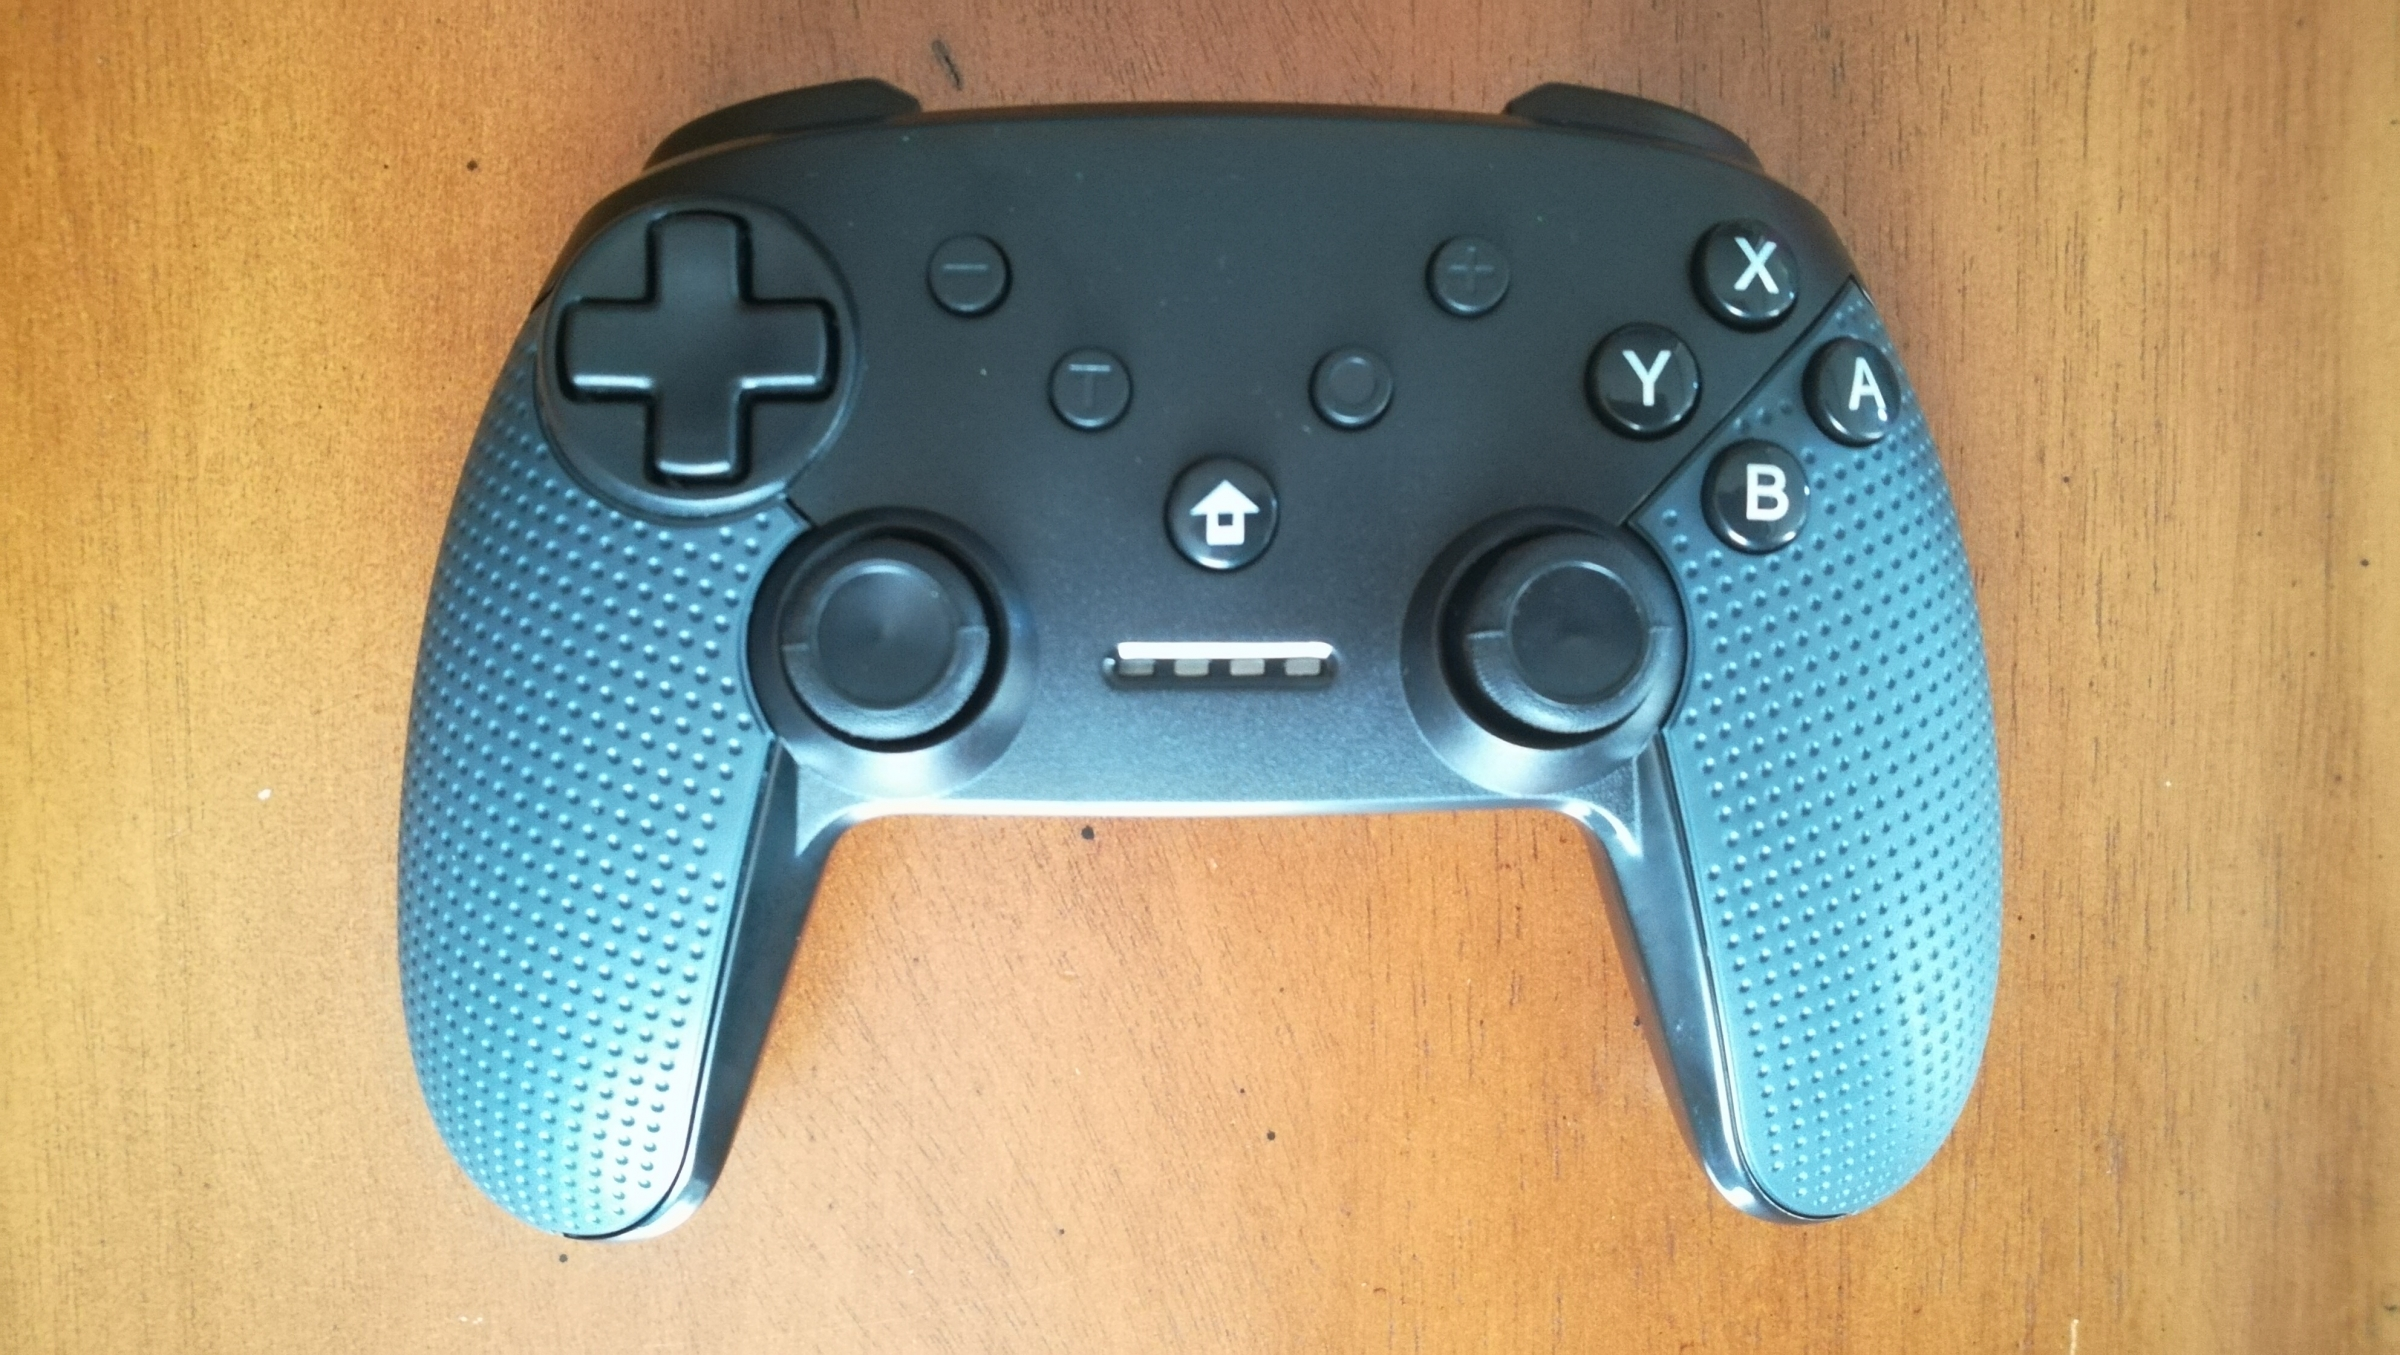 Good alternative for a Pro controller.